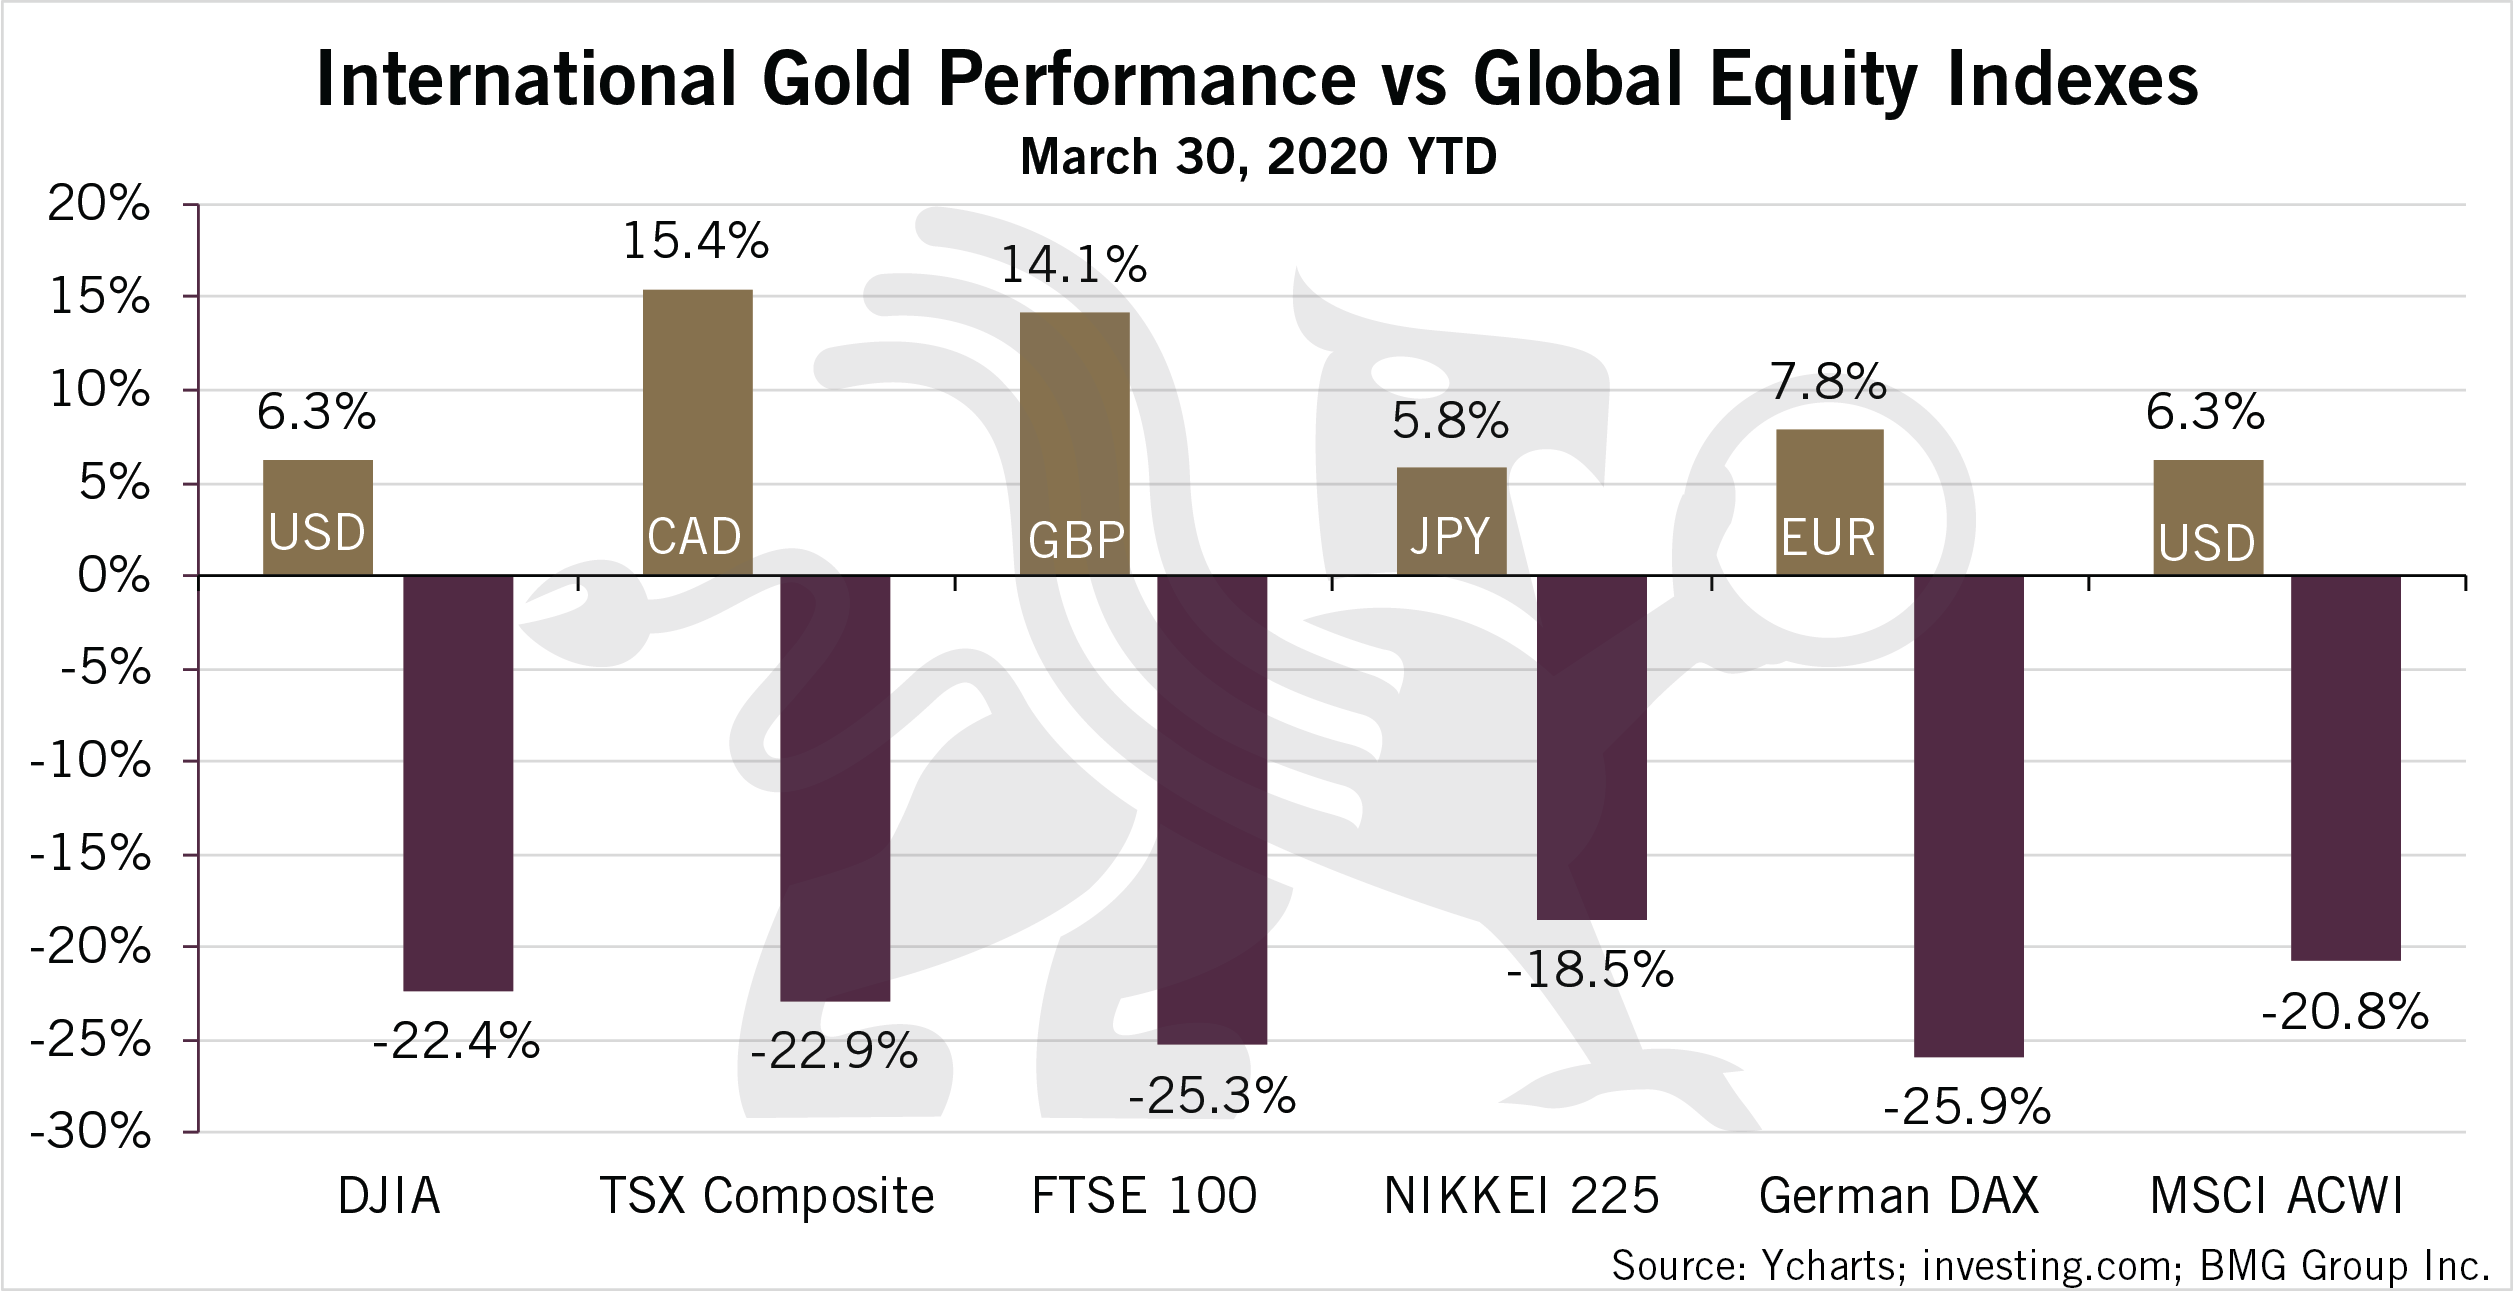 International Gold Performance vs Global Equity Indexes